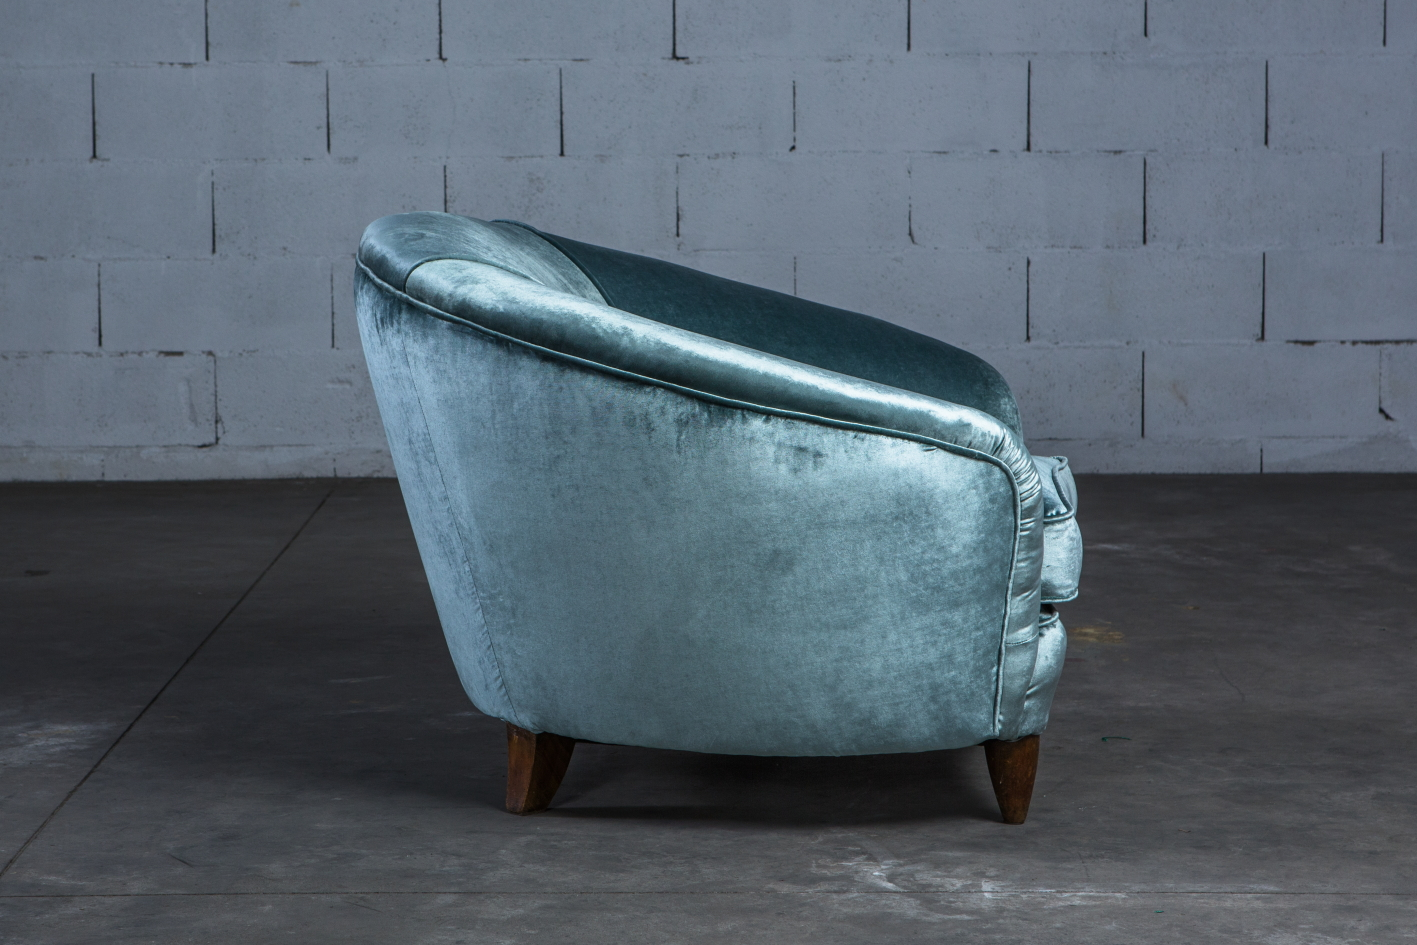 A beautiful pair of Italian lounge chairs in light blue silk velvet - Italy 1940s - Profile